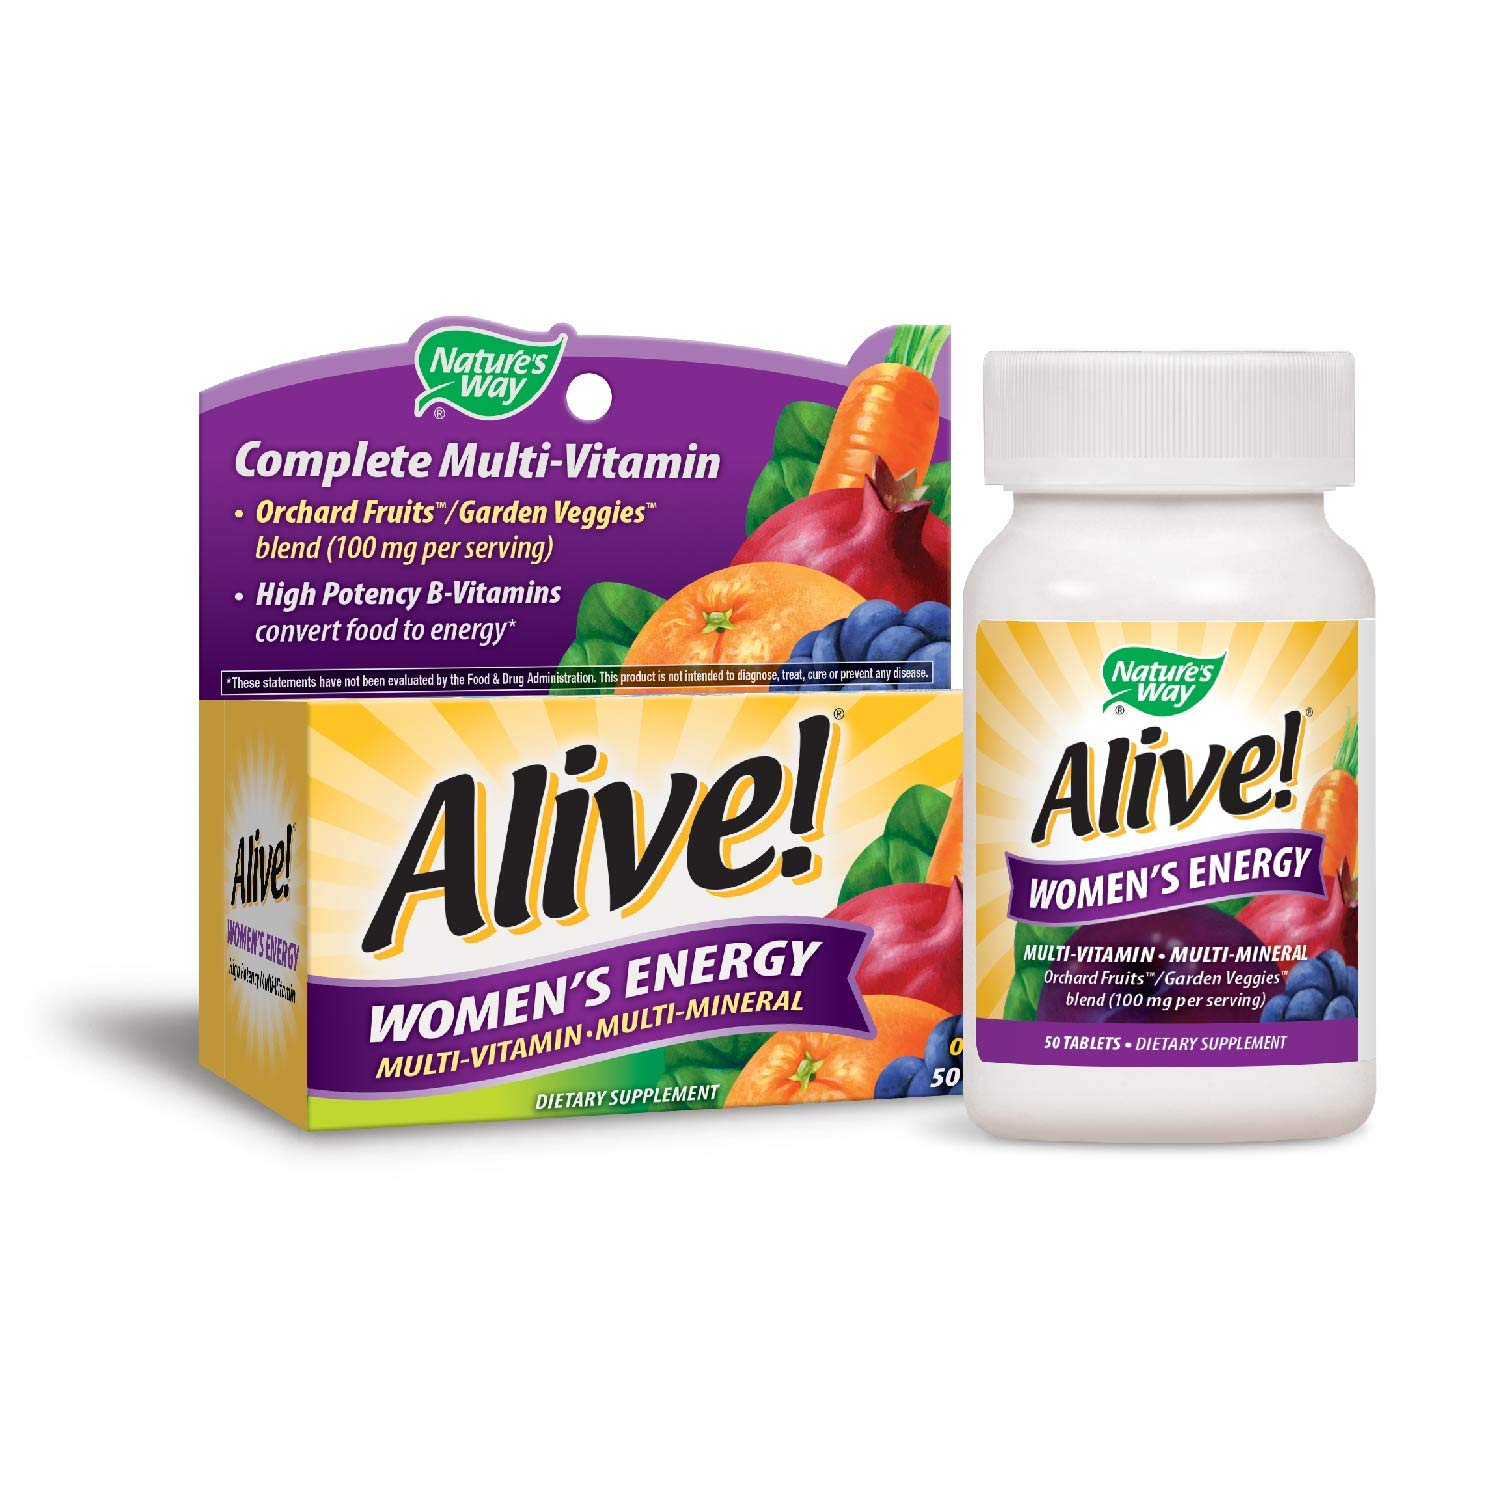 Vitamins For Energy >> Nature S Way Alive Women S Energy Multivitamin Tablets Fruit And Veggie Blend 100mg Per Serving